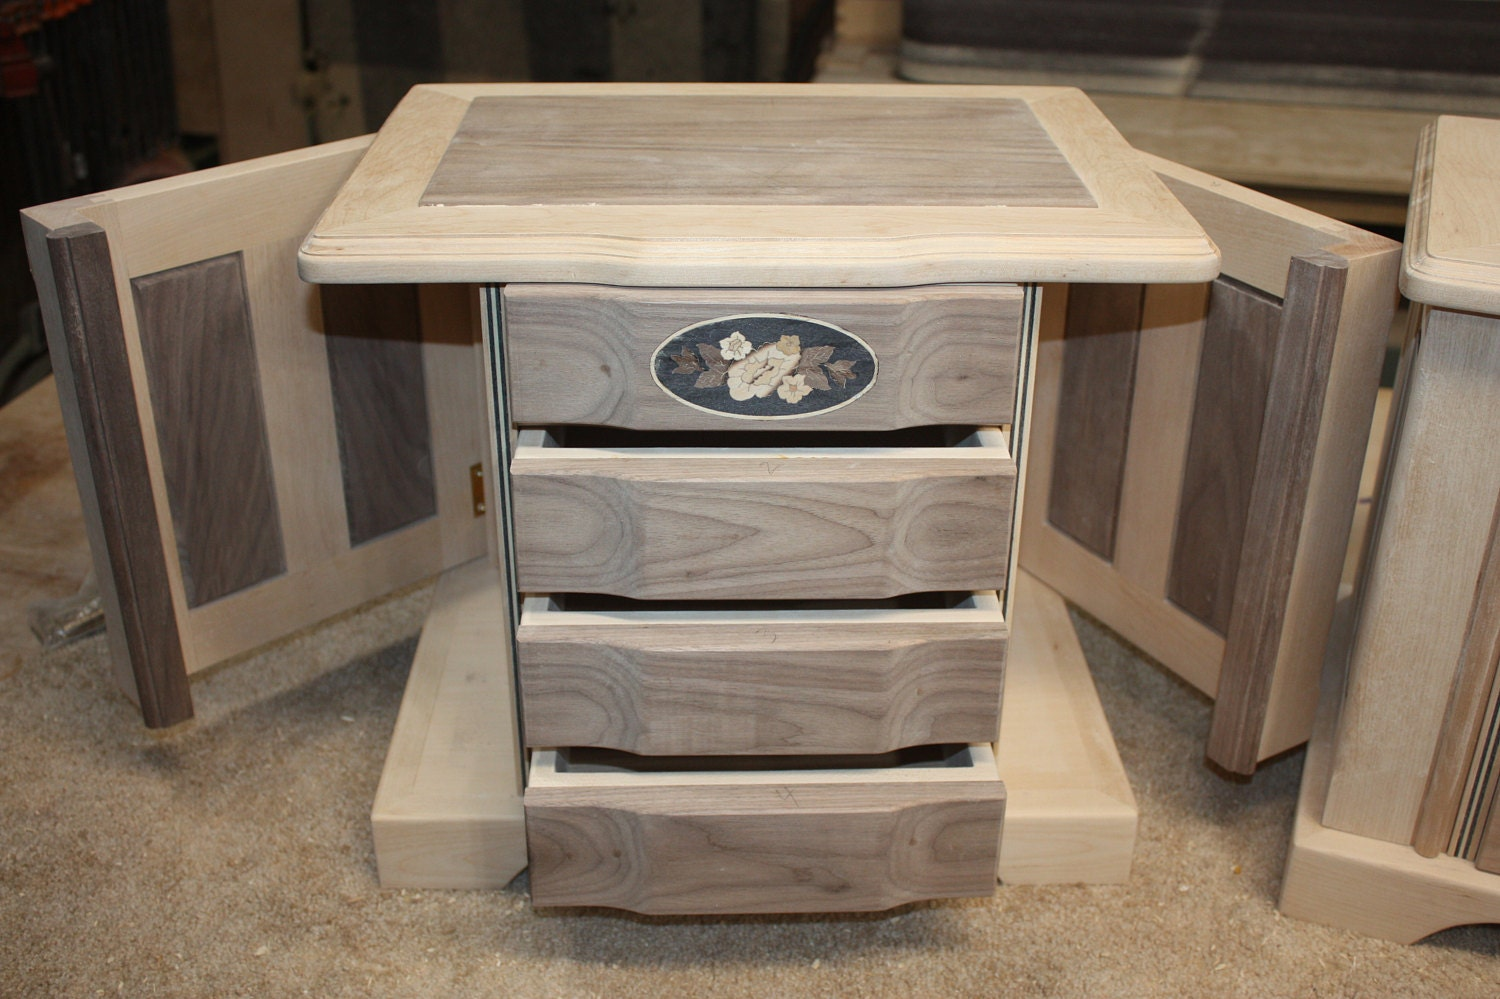 Large 4 Drawer Jewelry Box with Swing Out Sides